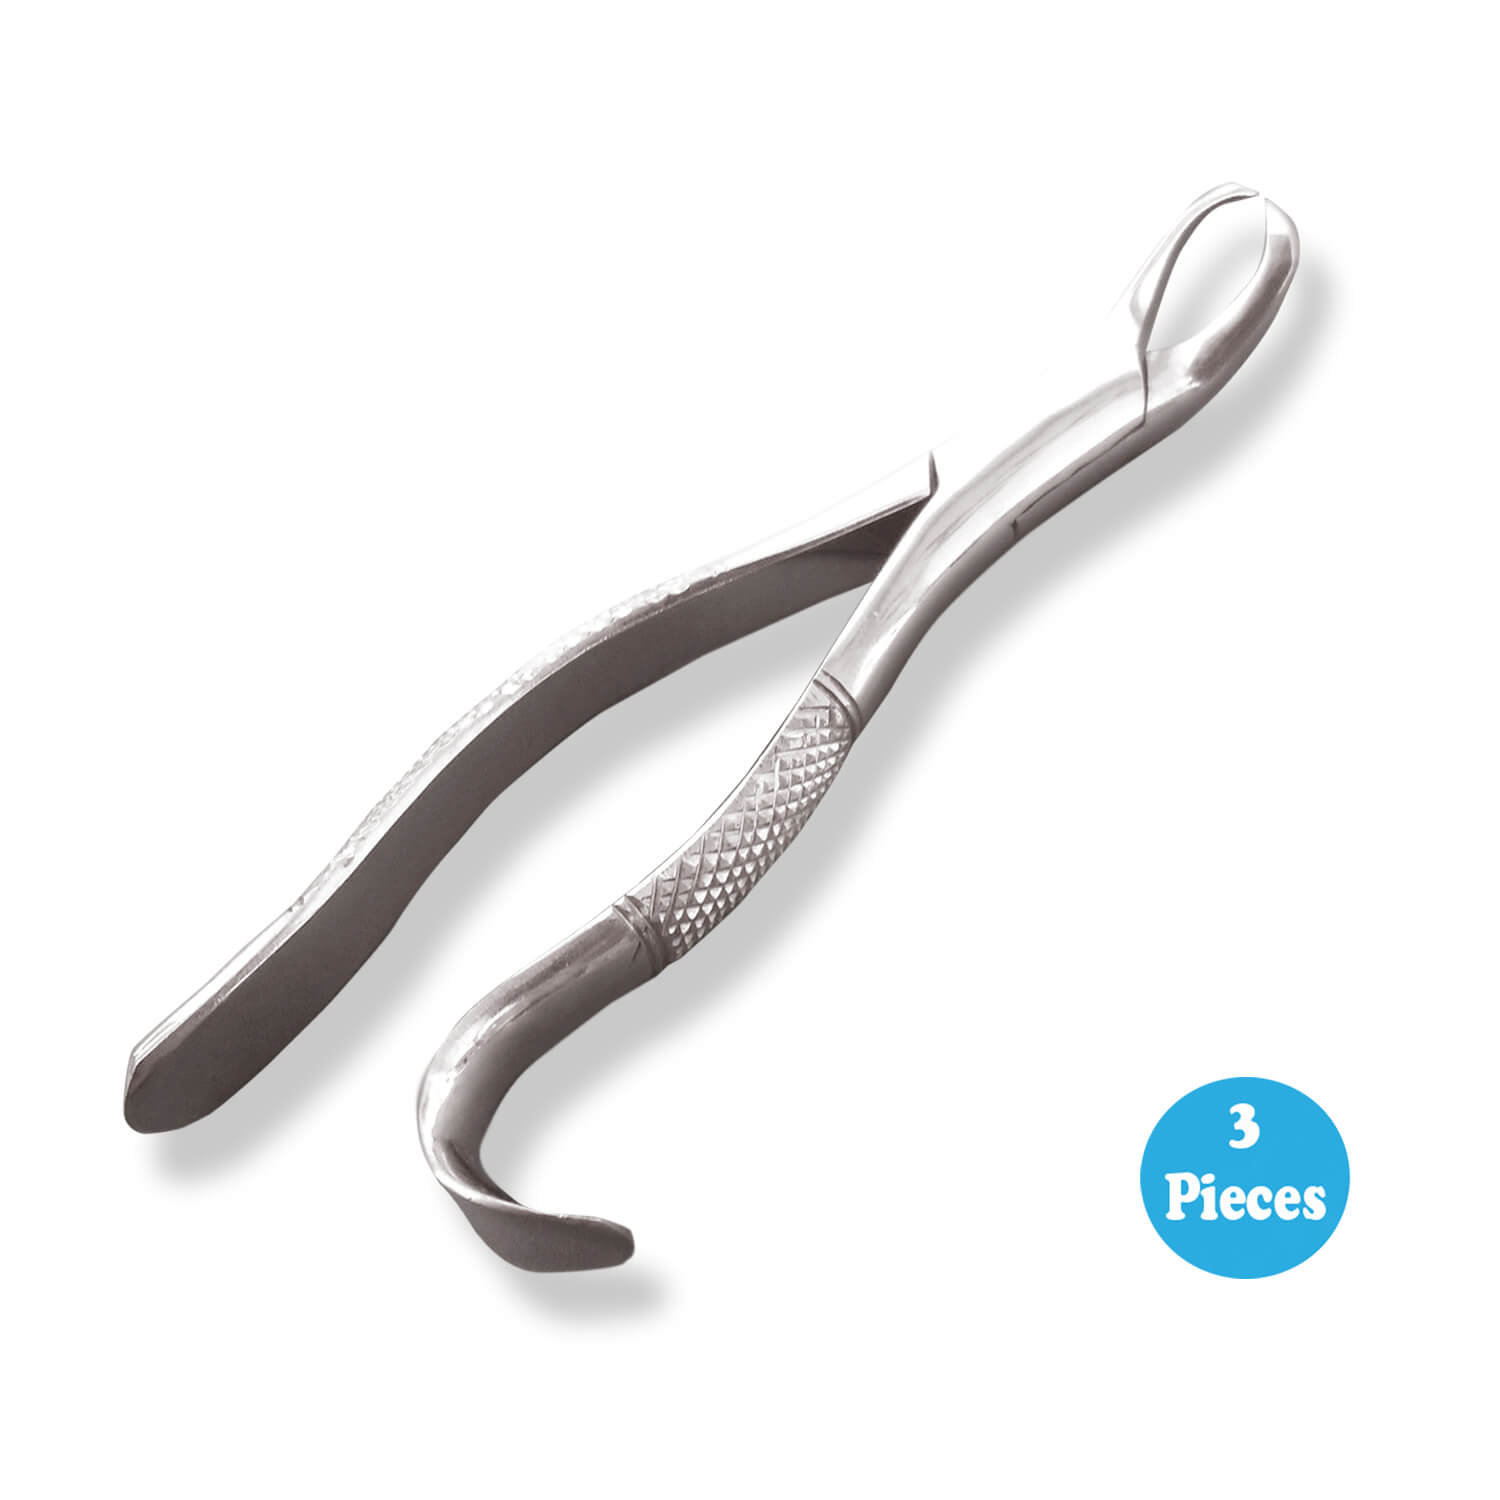 3 Extracting forceps Dental Surgical 16S